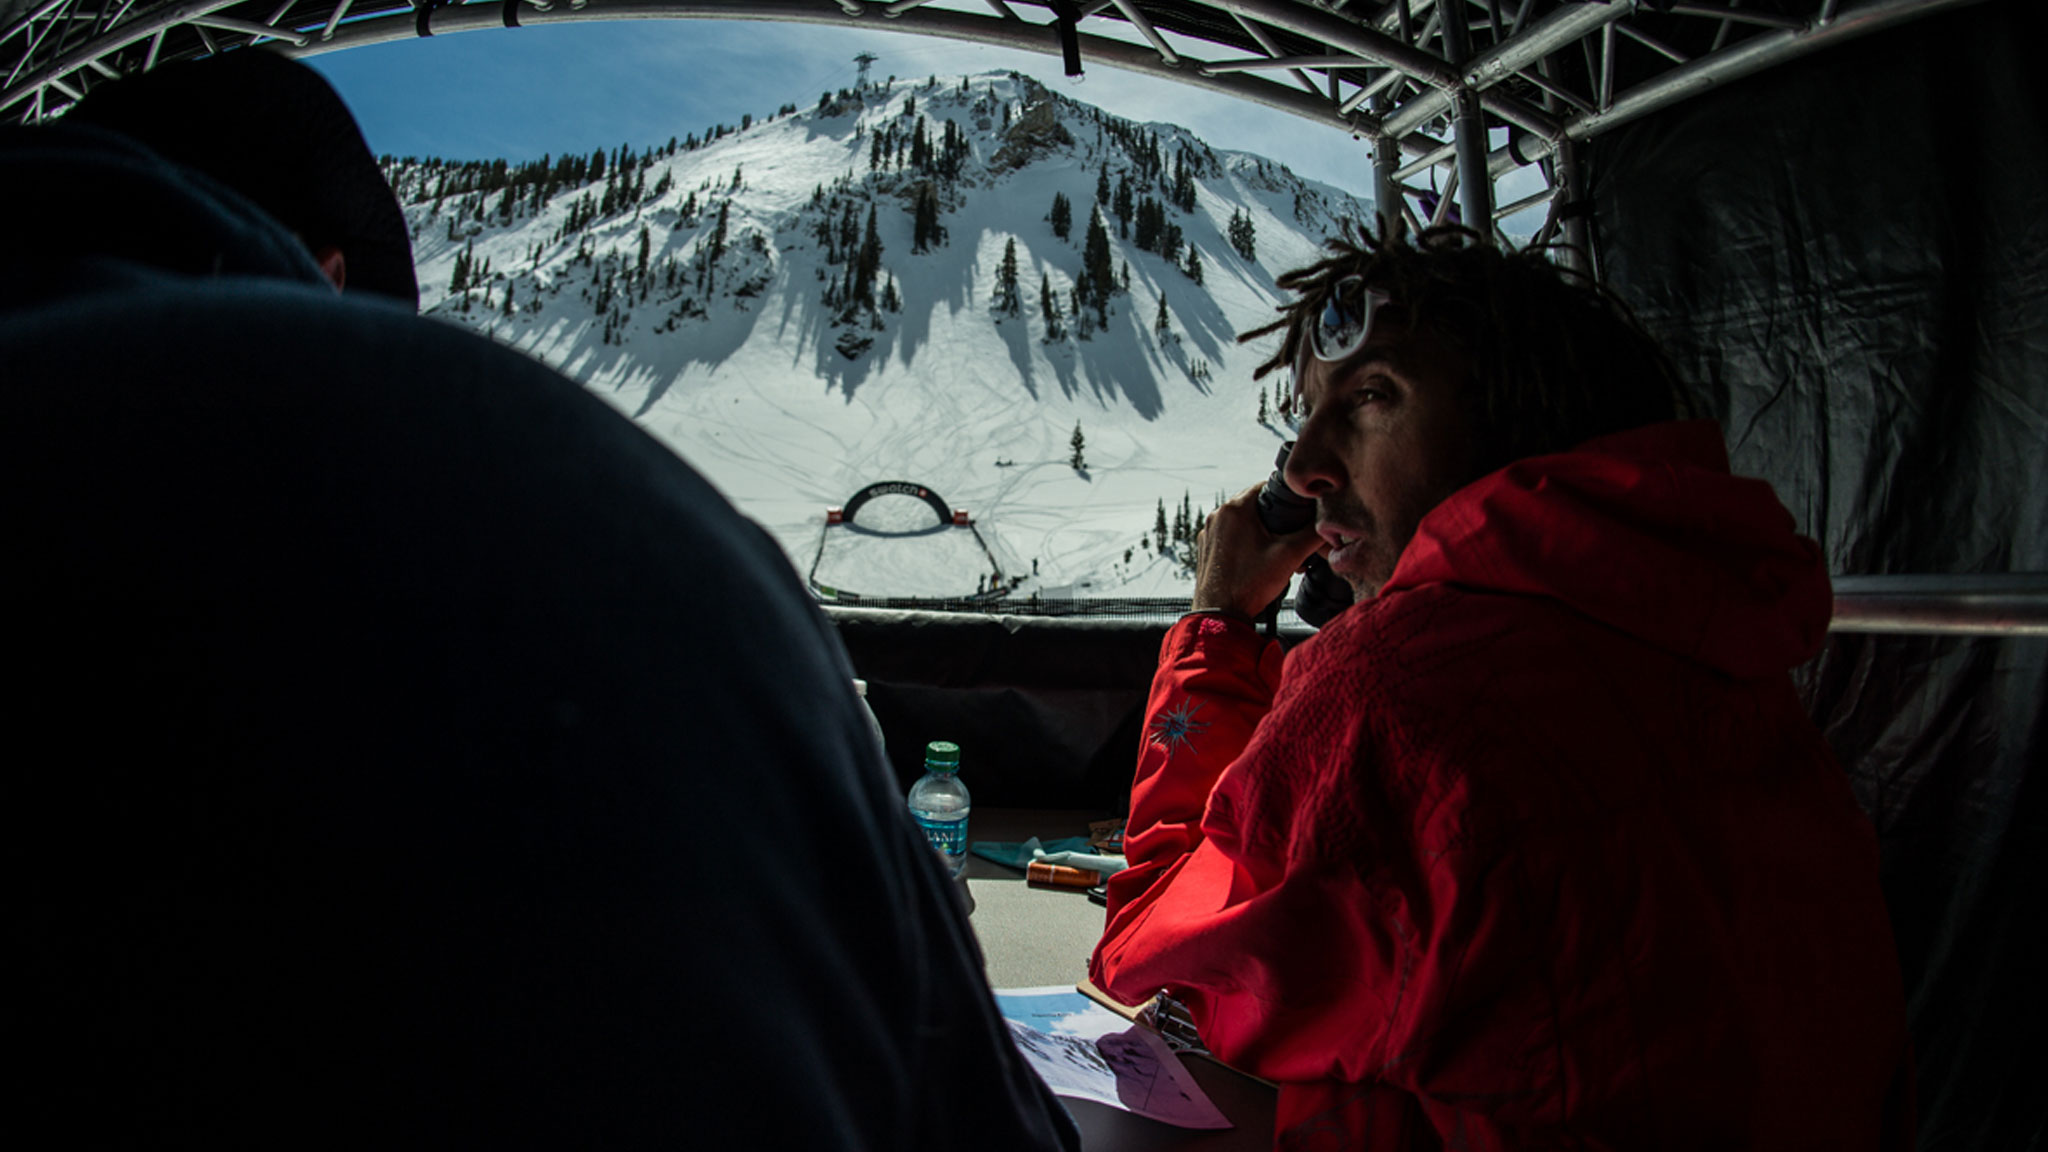 Last year, the only U.S. stop of the FWT was held in Snowbird, Utah.